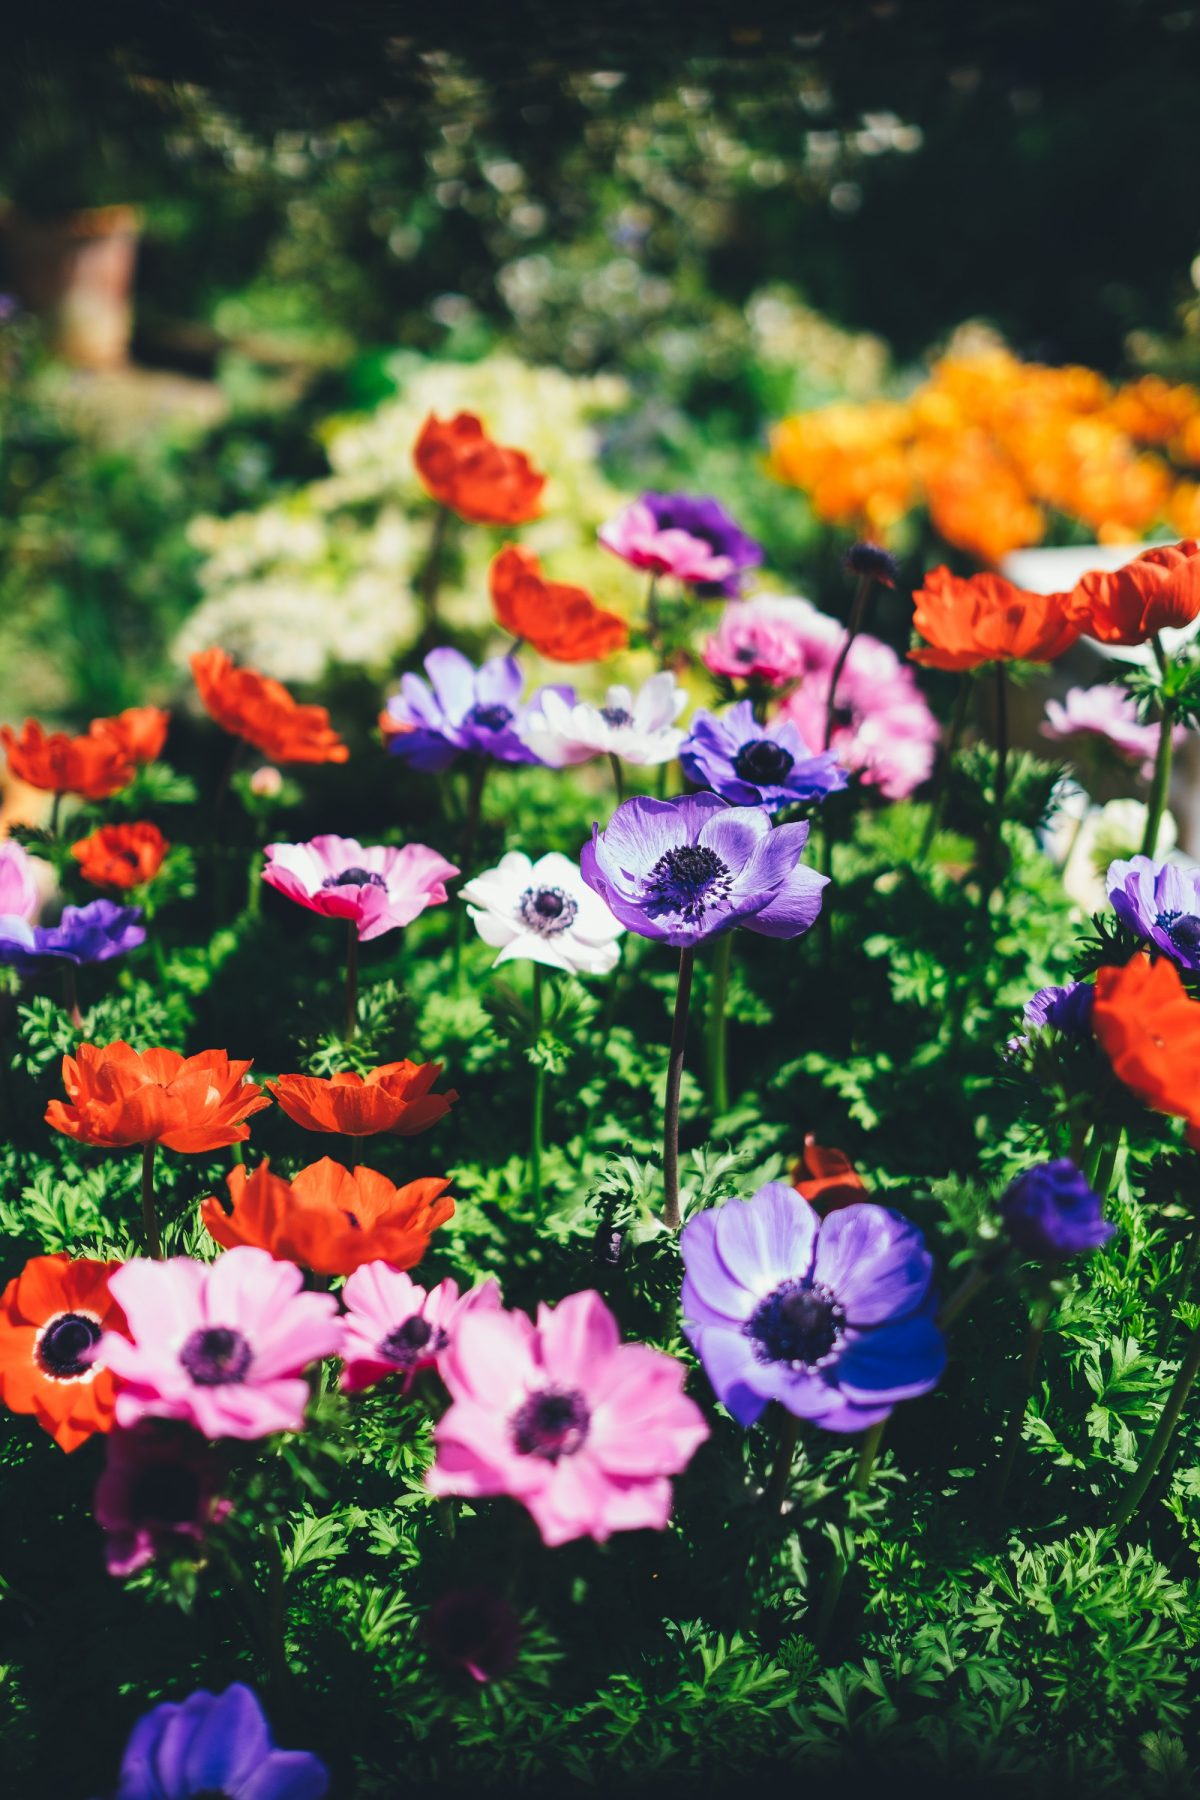 It's Time for Some Garden Care – Tips to Enhance Its Beauty